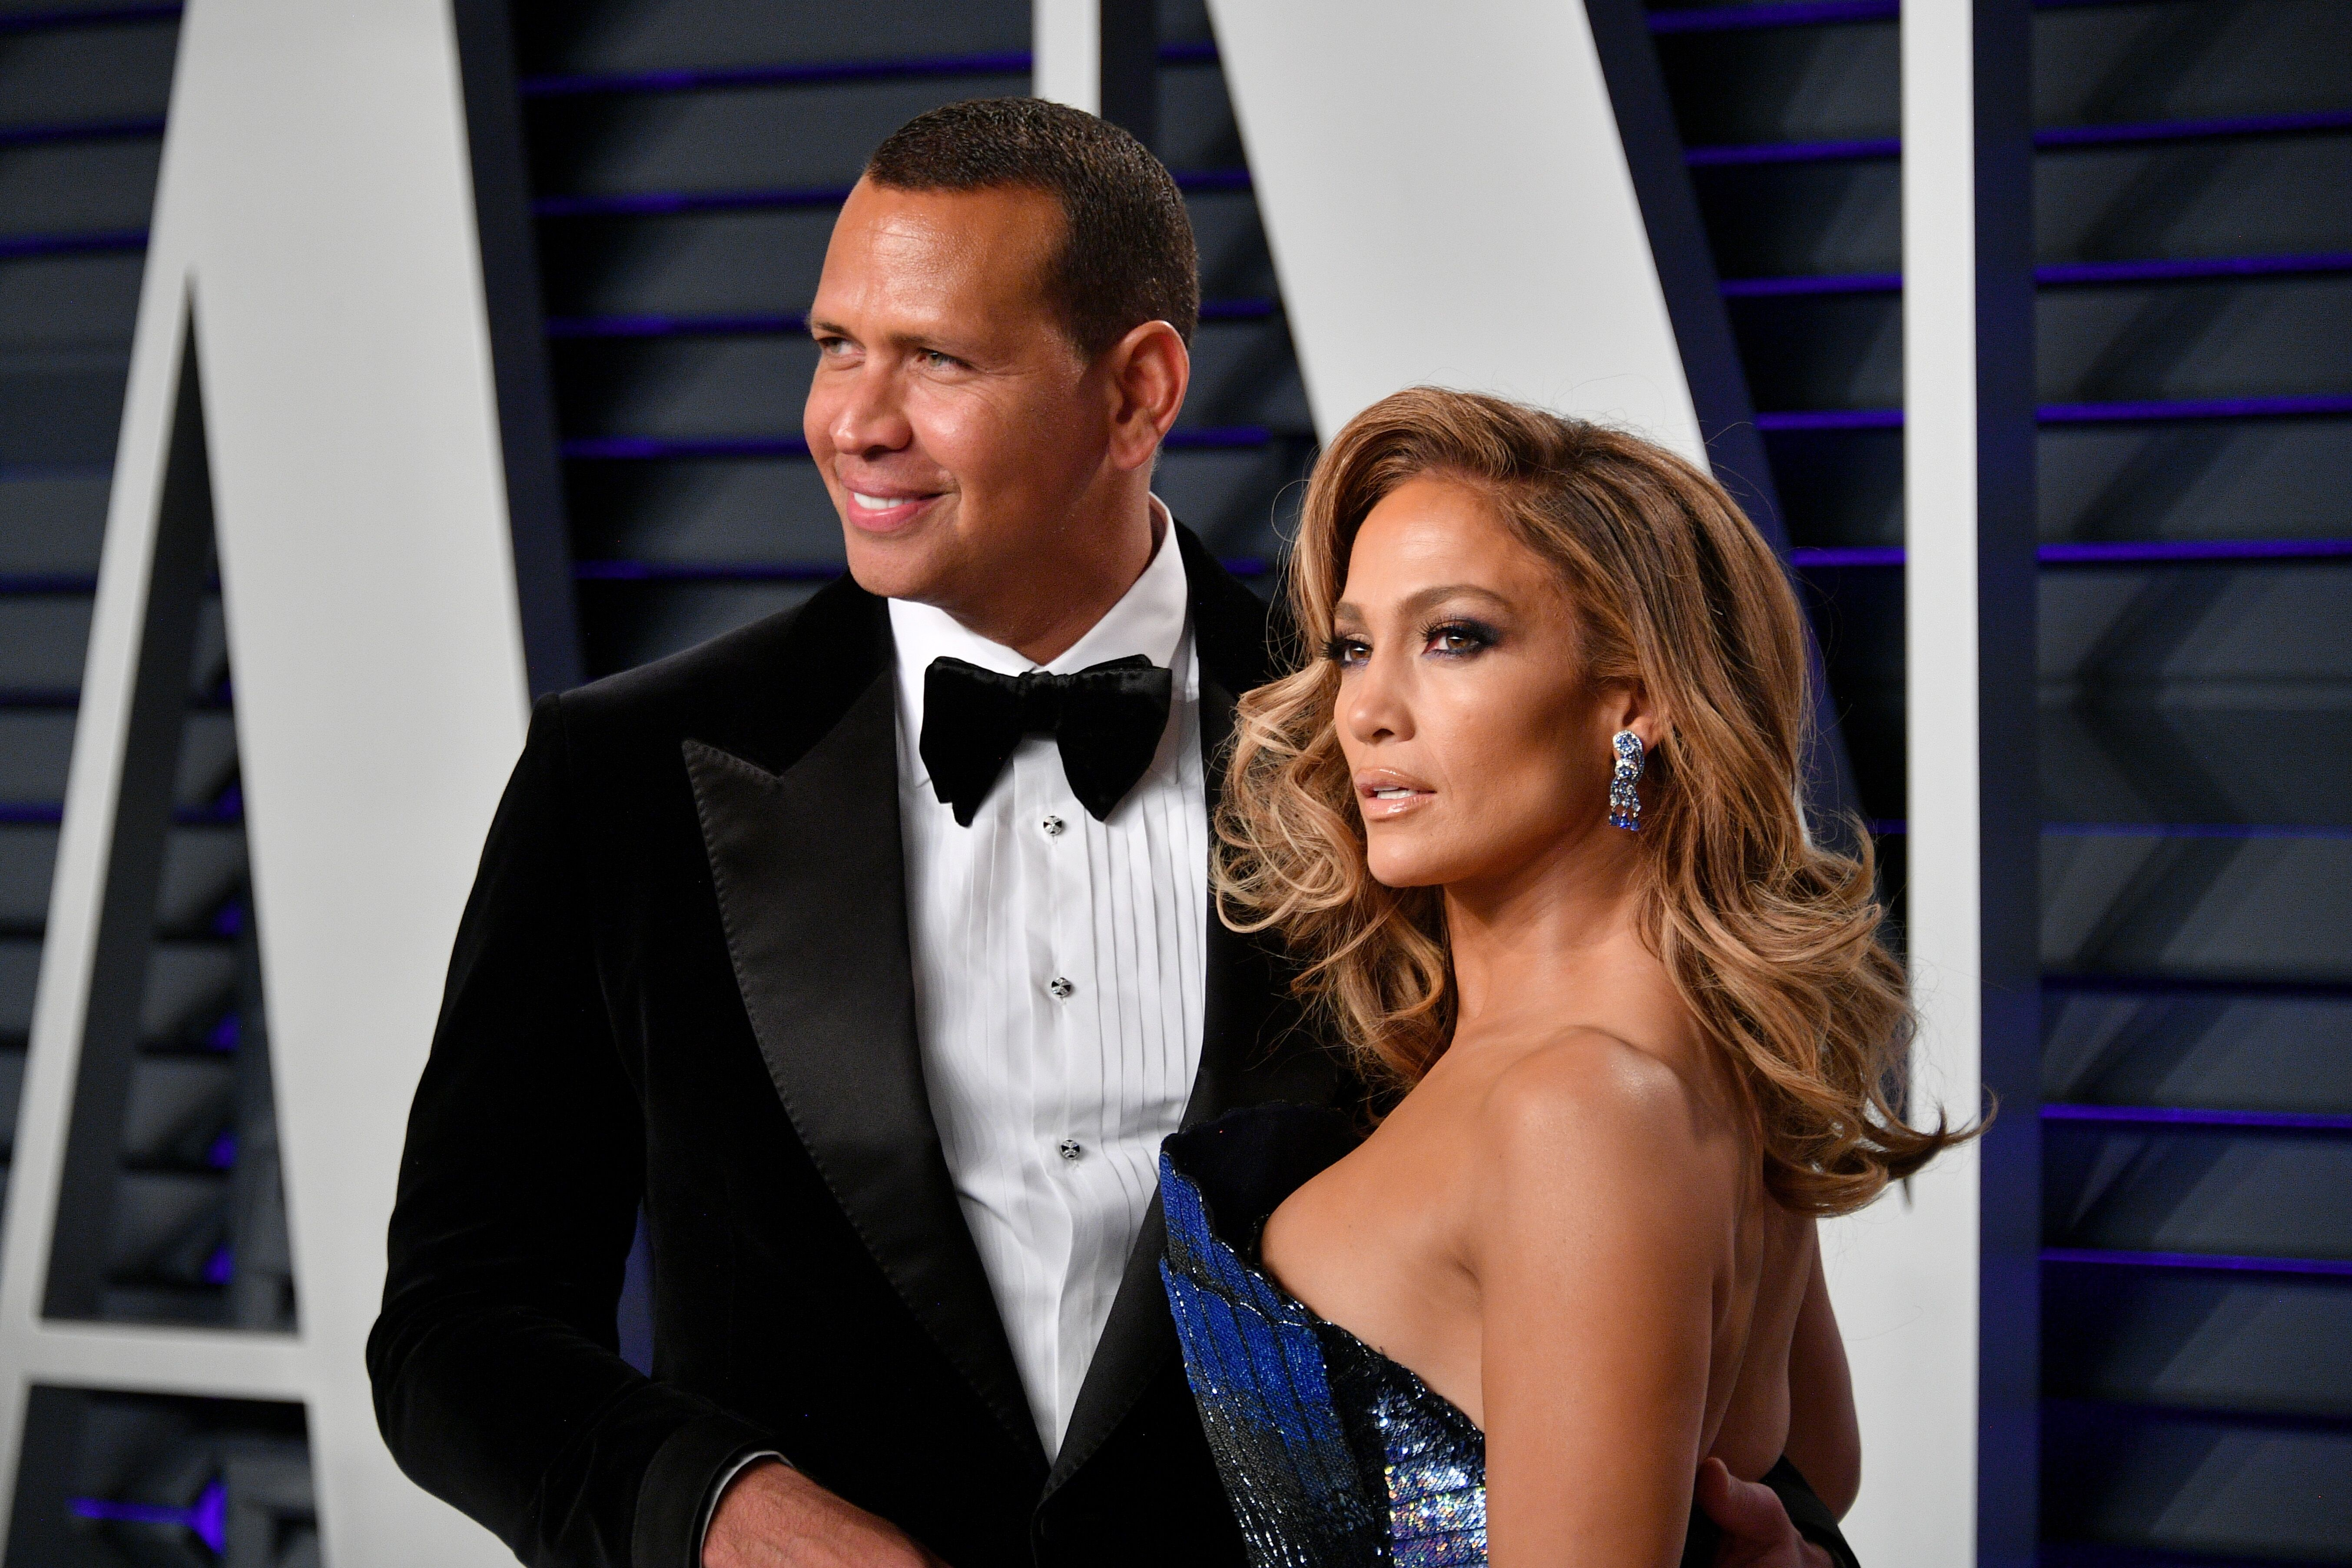 Alex Rodriguez and Jennifer Lopez attend the 2019 Vanity Fair Oscar Party hosted by Radhika Jones at Wallis Annenberg Center for the Performing Arts on February 24, 2019 | Photo: Getty Images